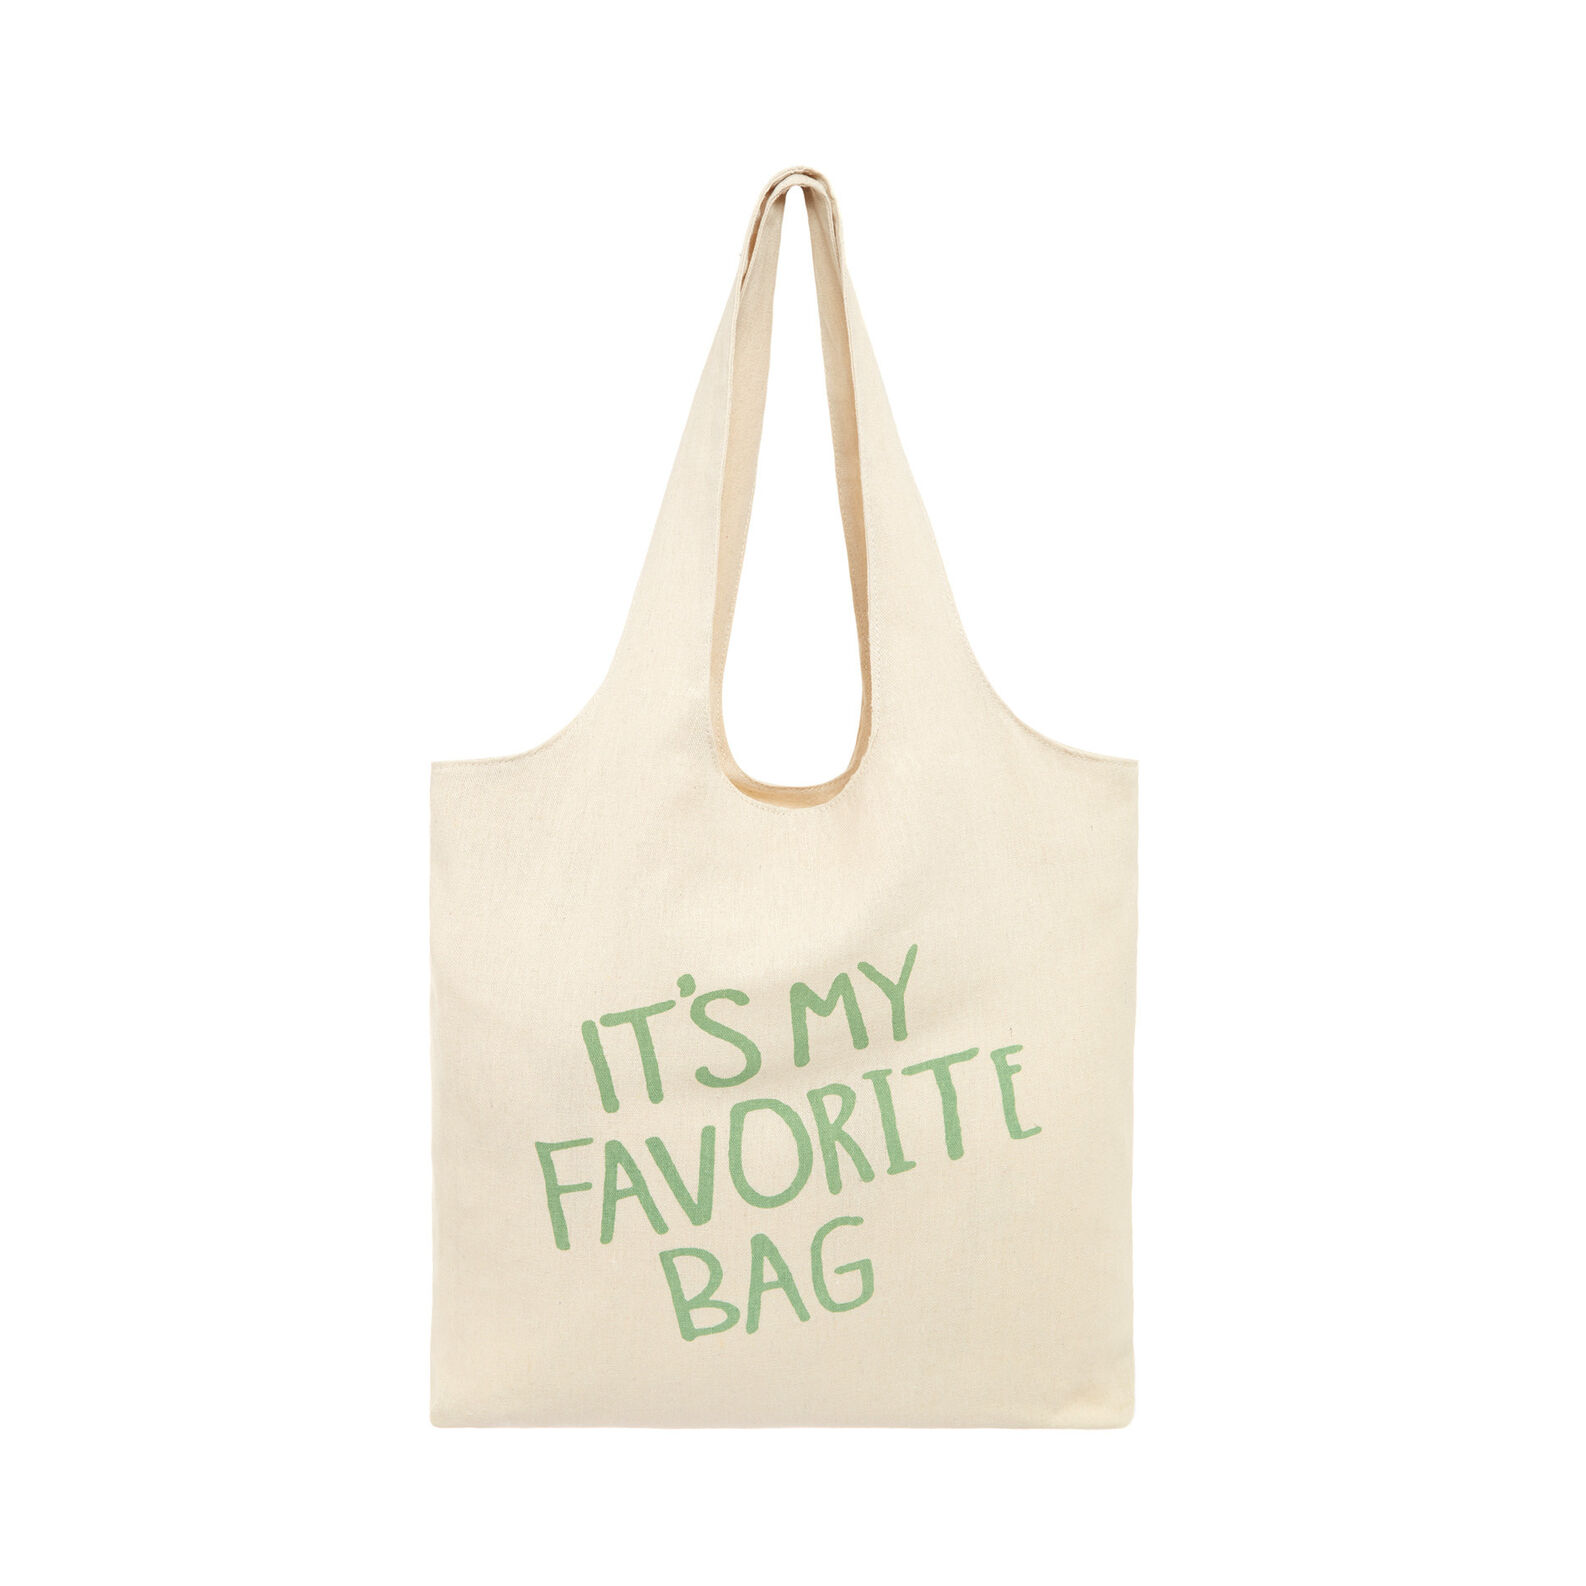 It's my favorite bag fabric shopping bag